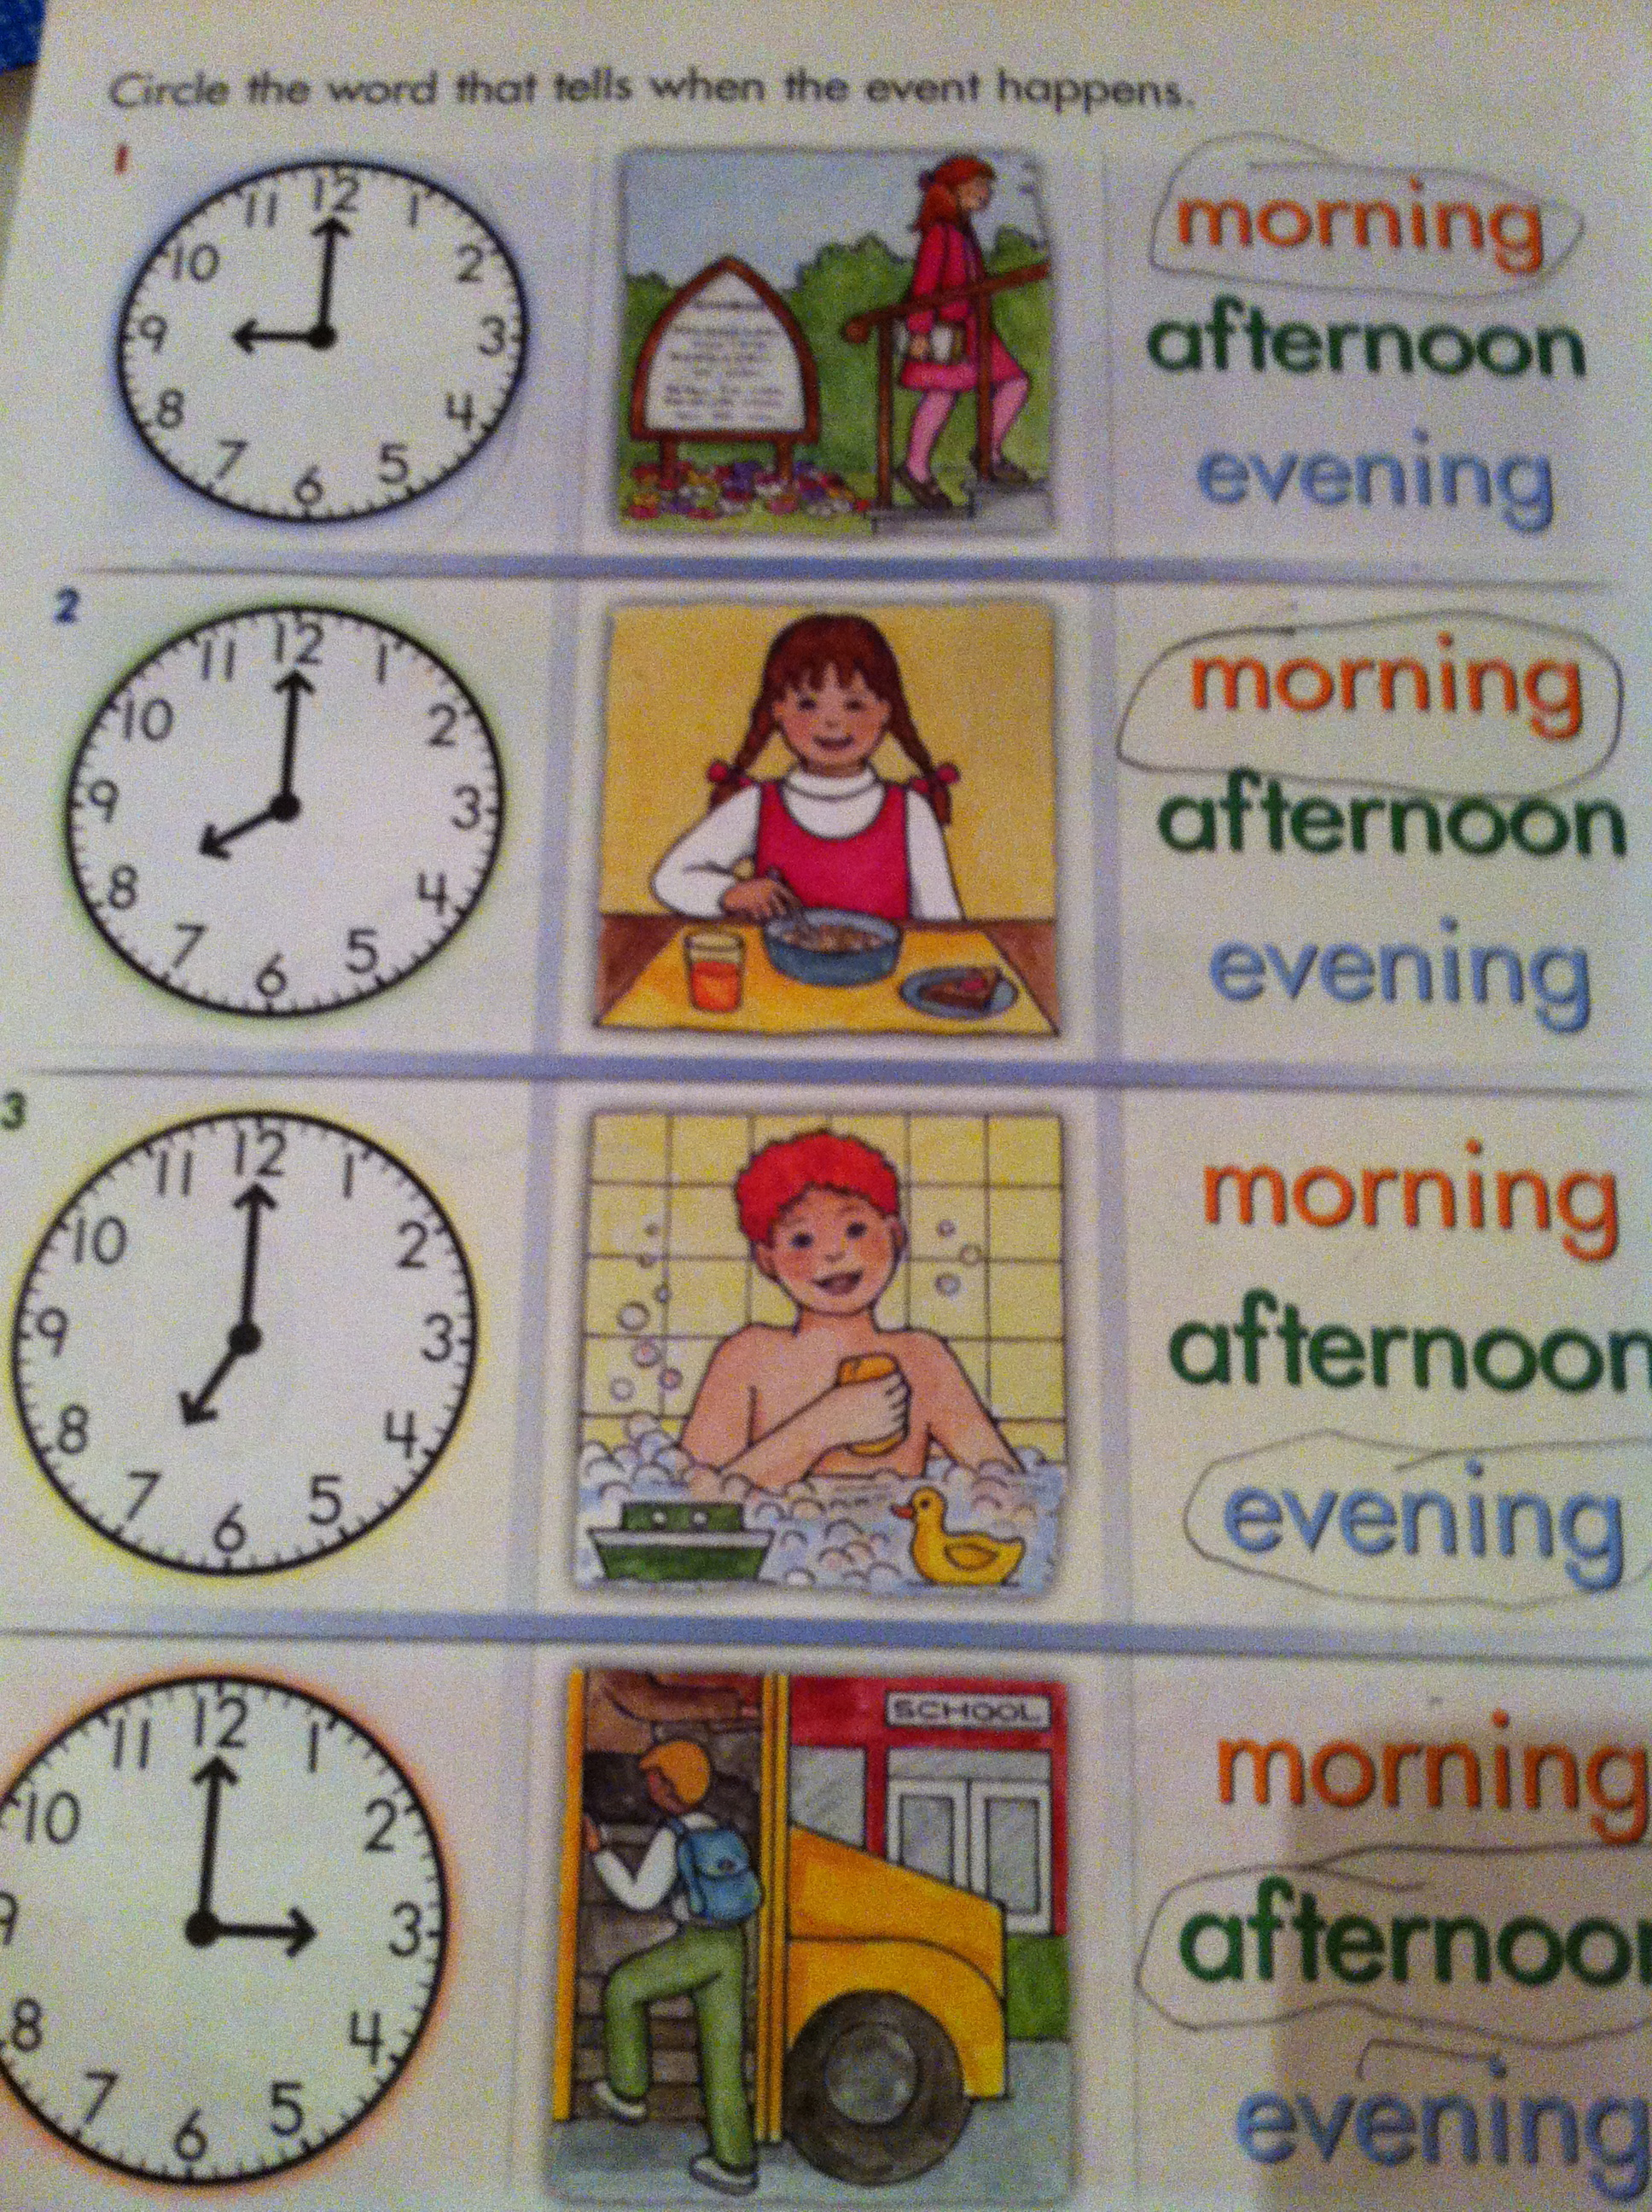 Morning Afternoon Evening And Night Word Labels Images